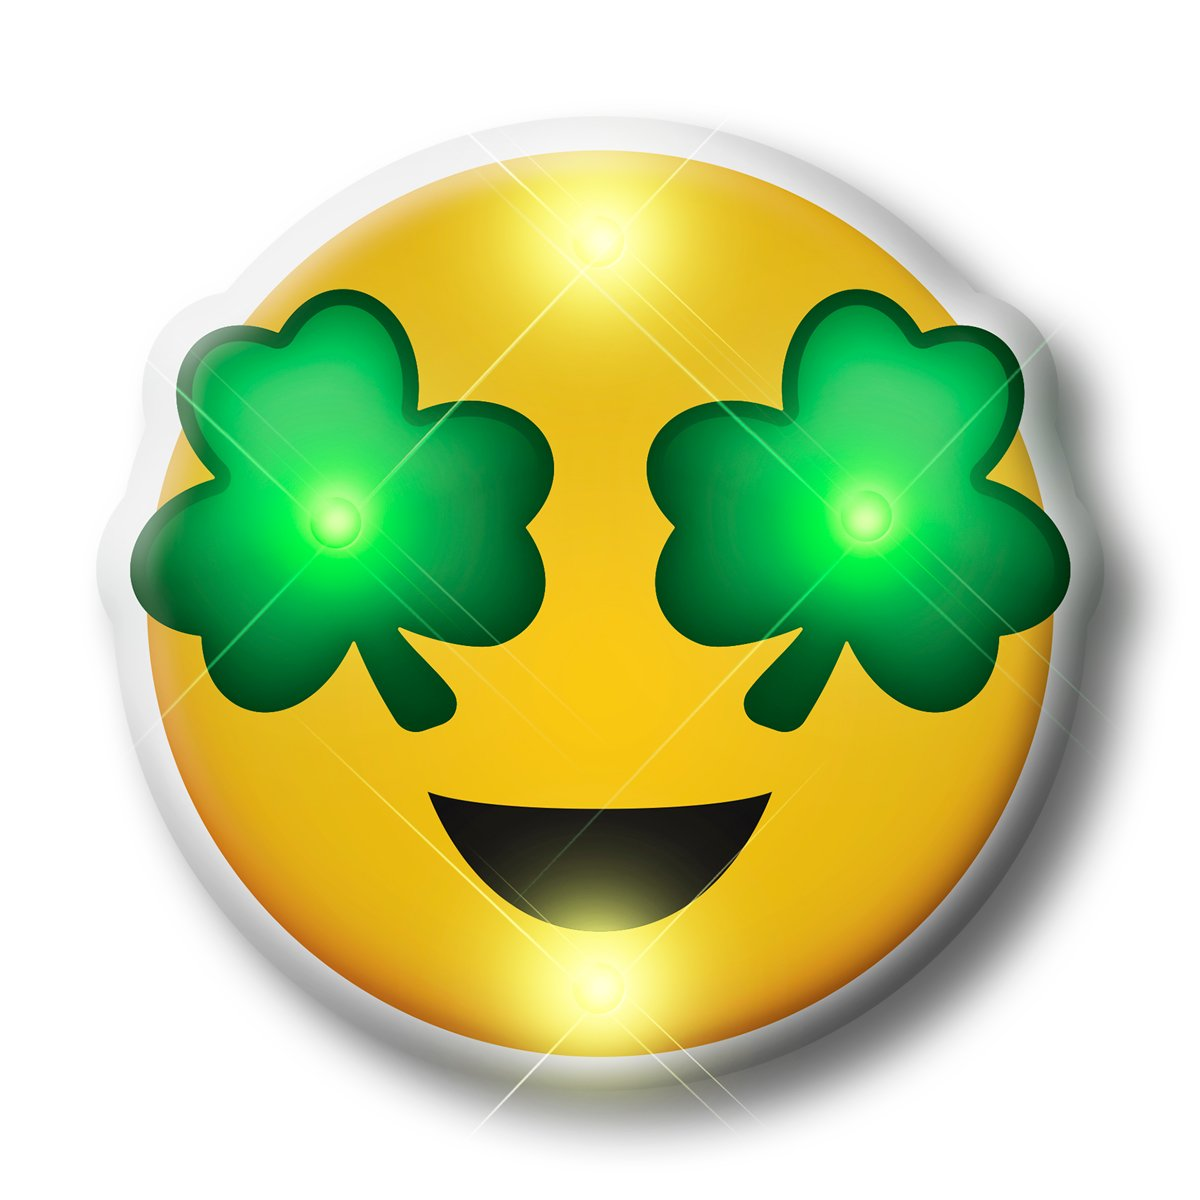 St Patrick S Day Irish Shamrock Eyes Emoji Flashing Body